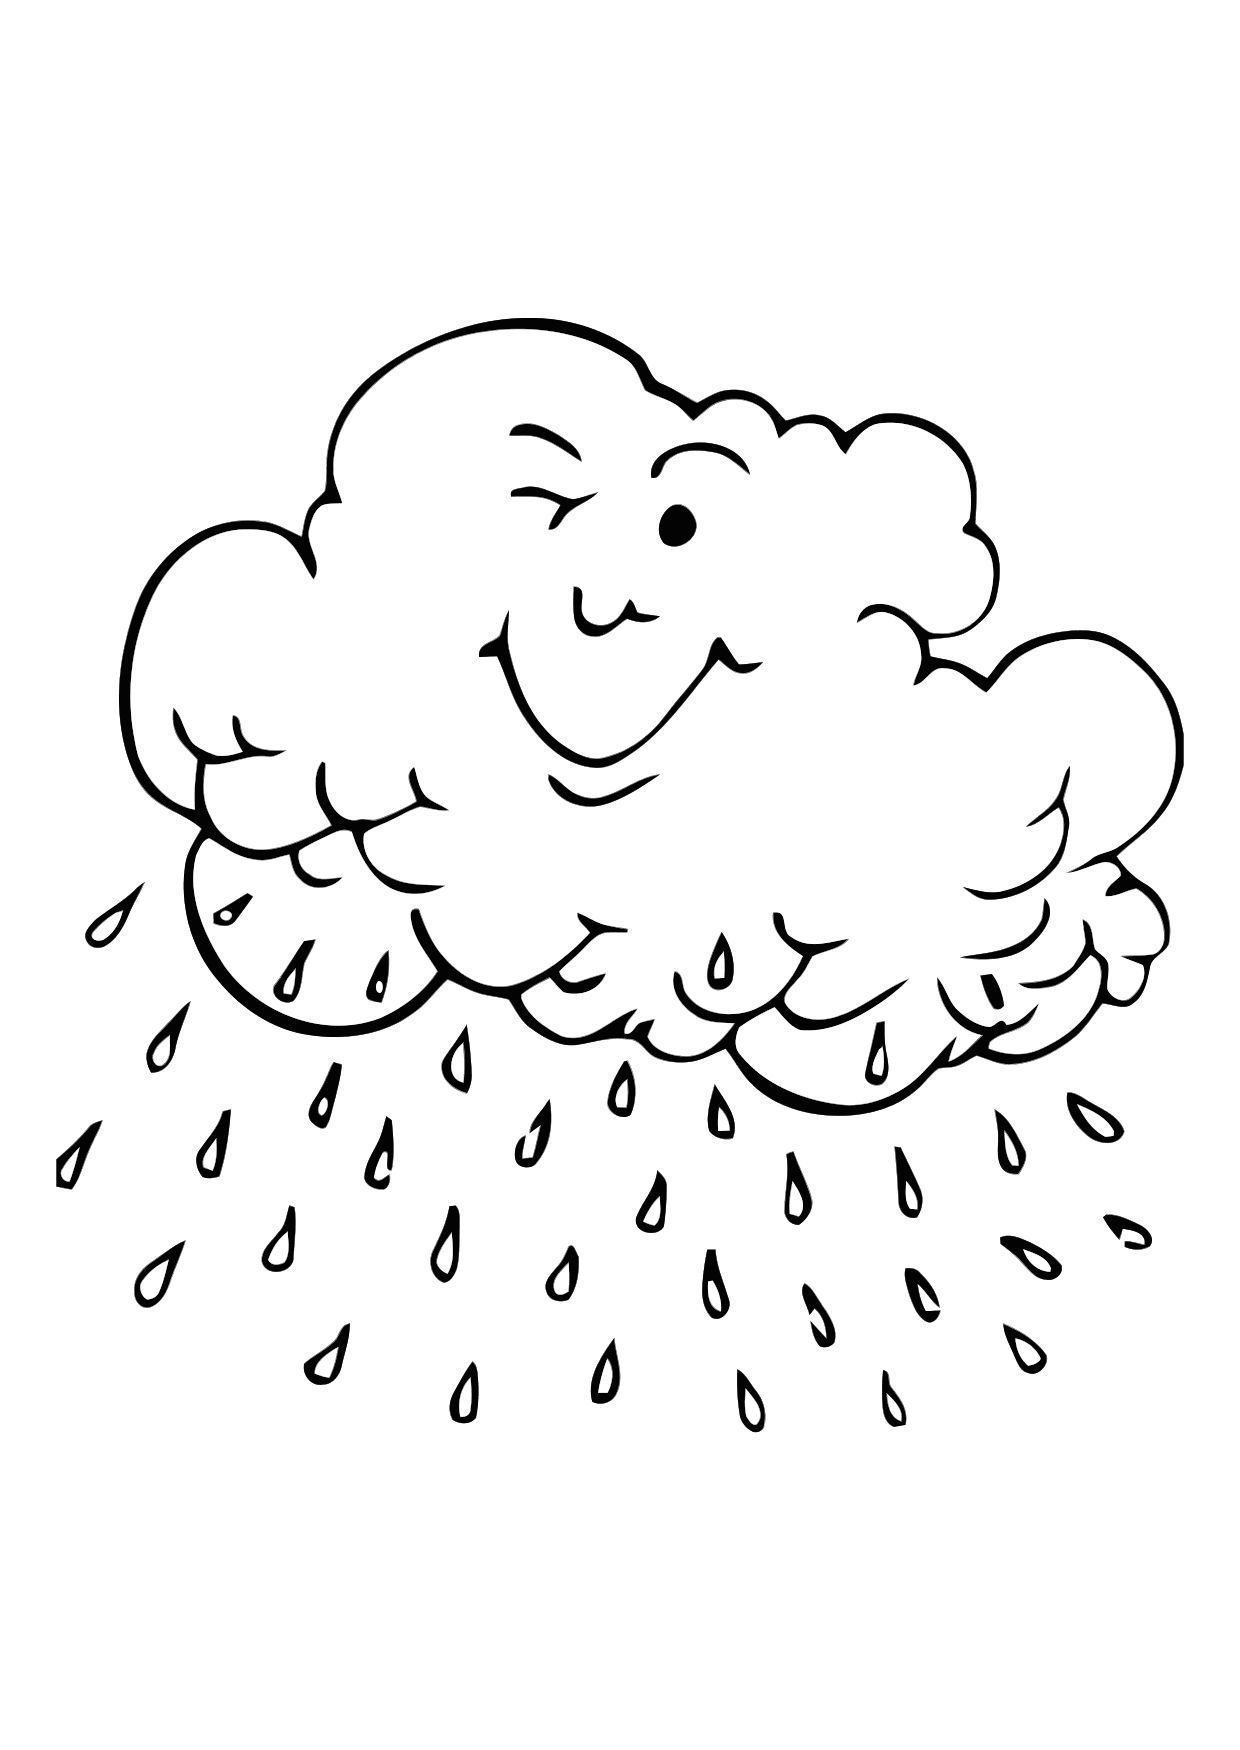 Coloring pages rainy day - Rain Coloring Pages For Kids And For Adults